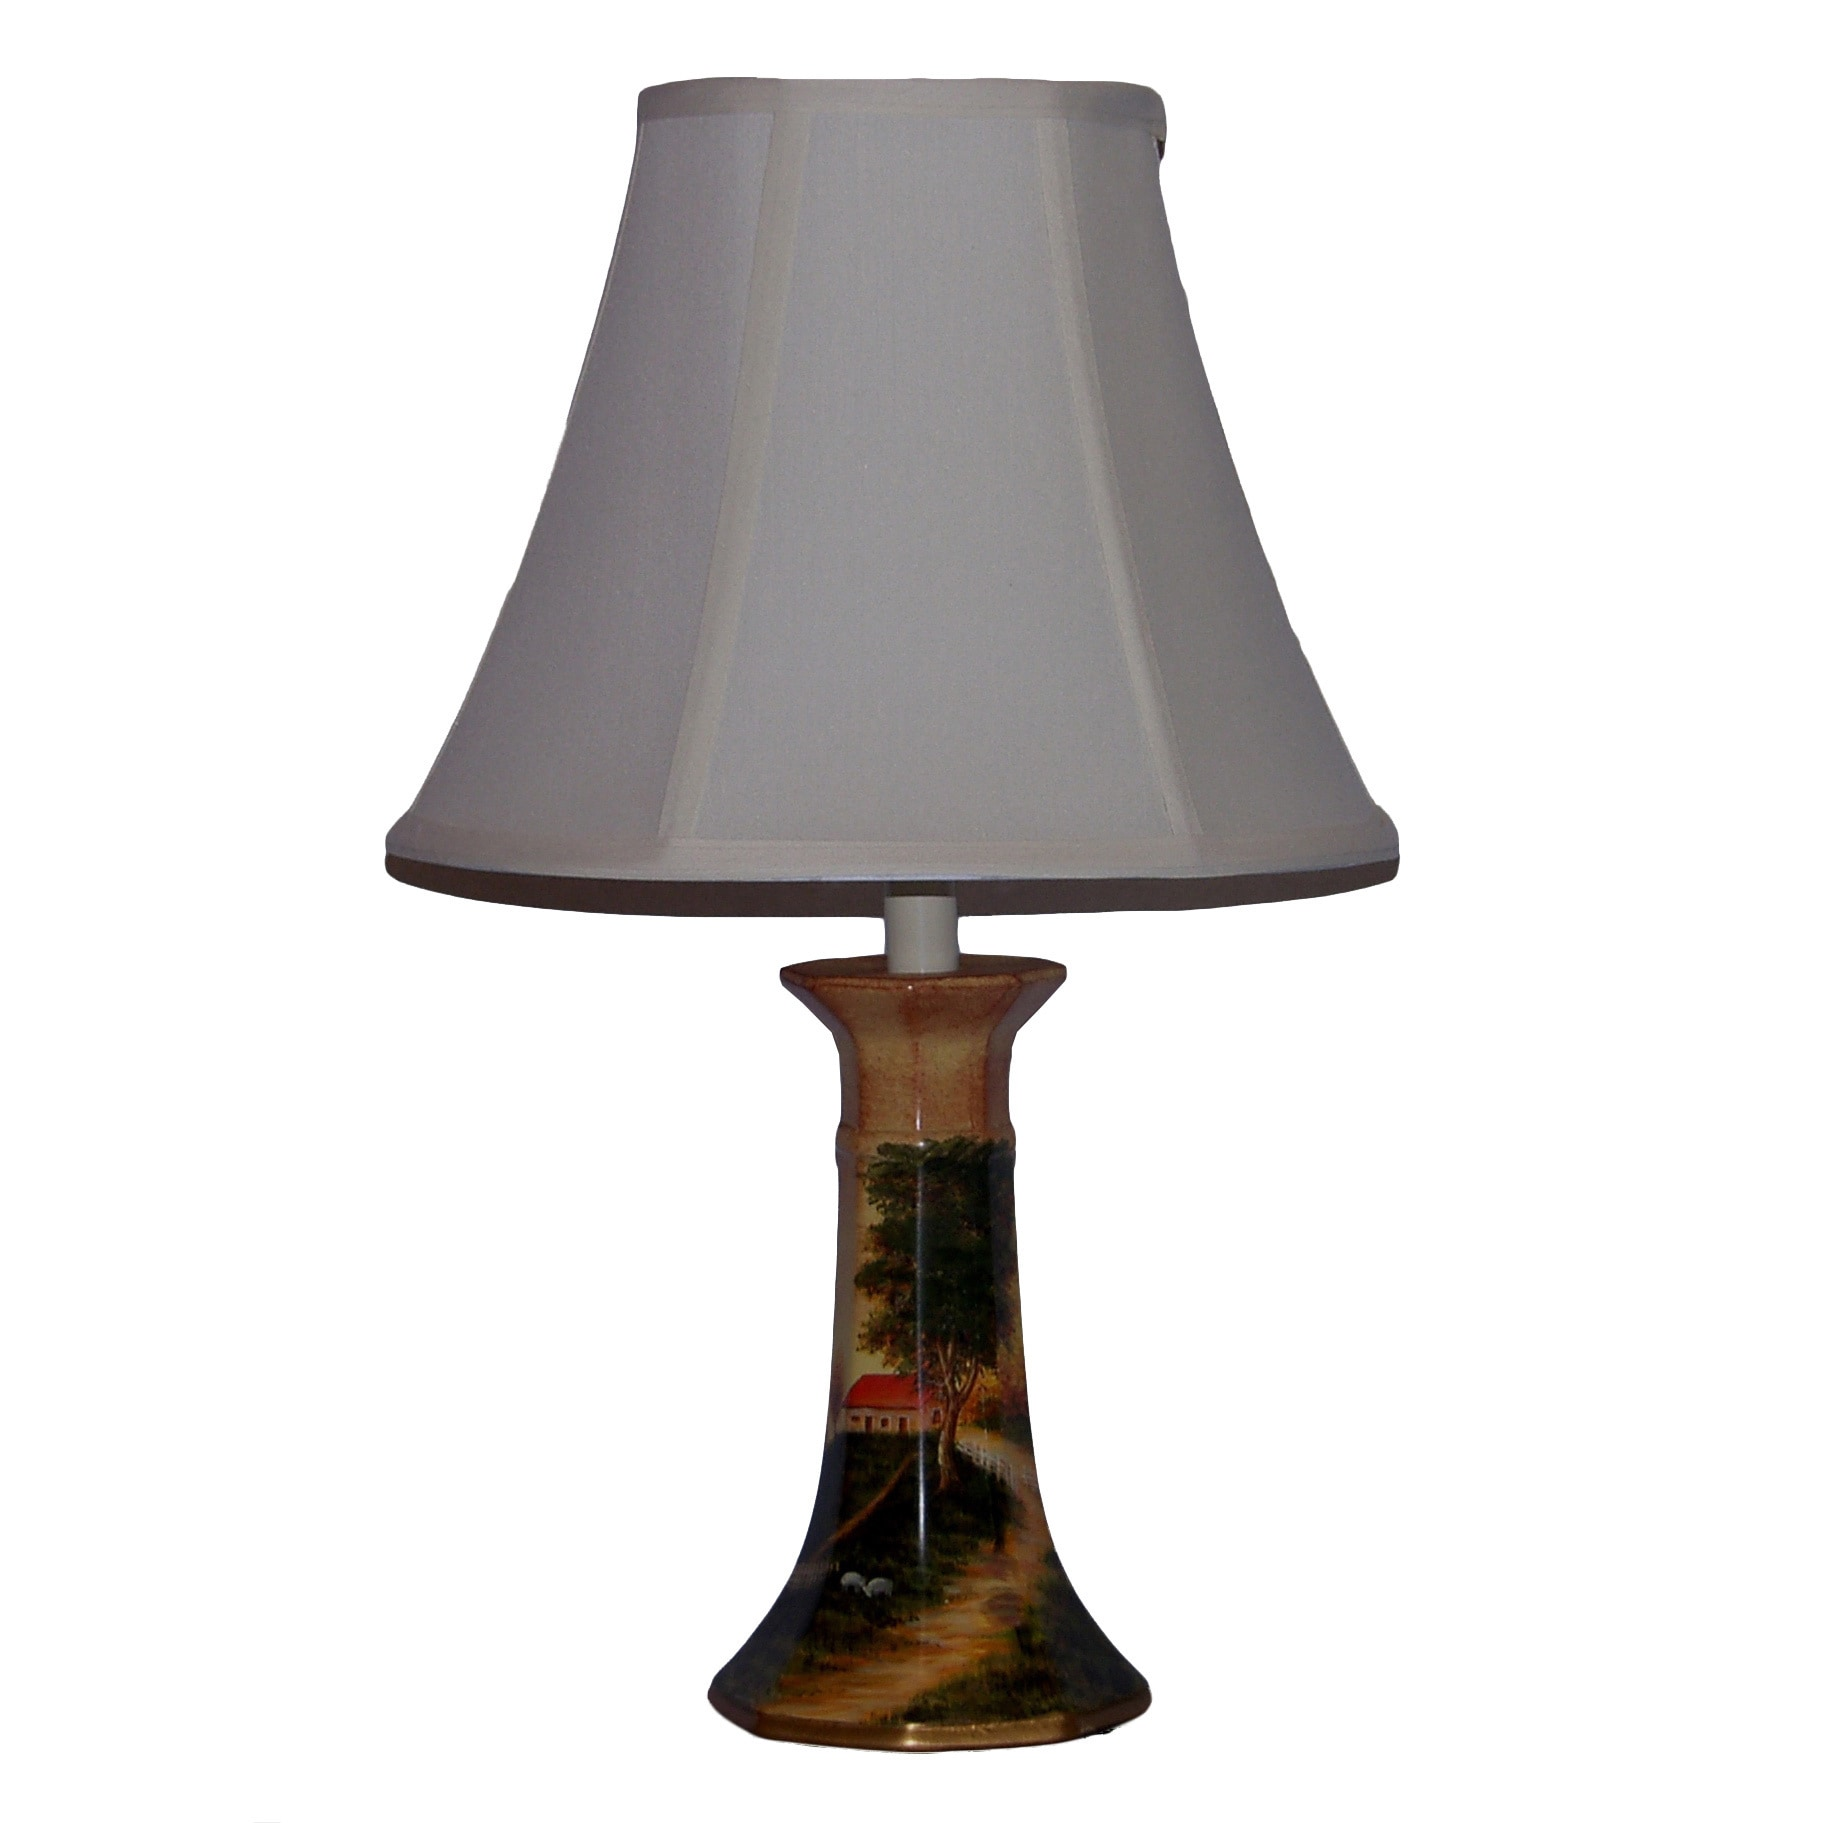 Country Farm Porcelain Table Lamp, Brown (Brass)